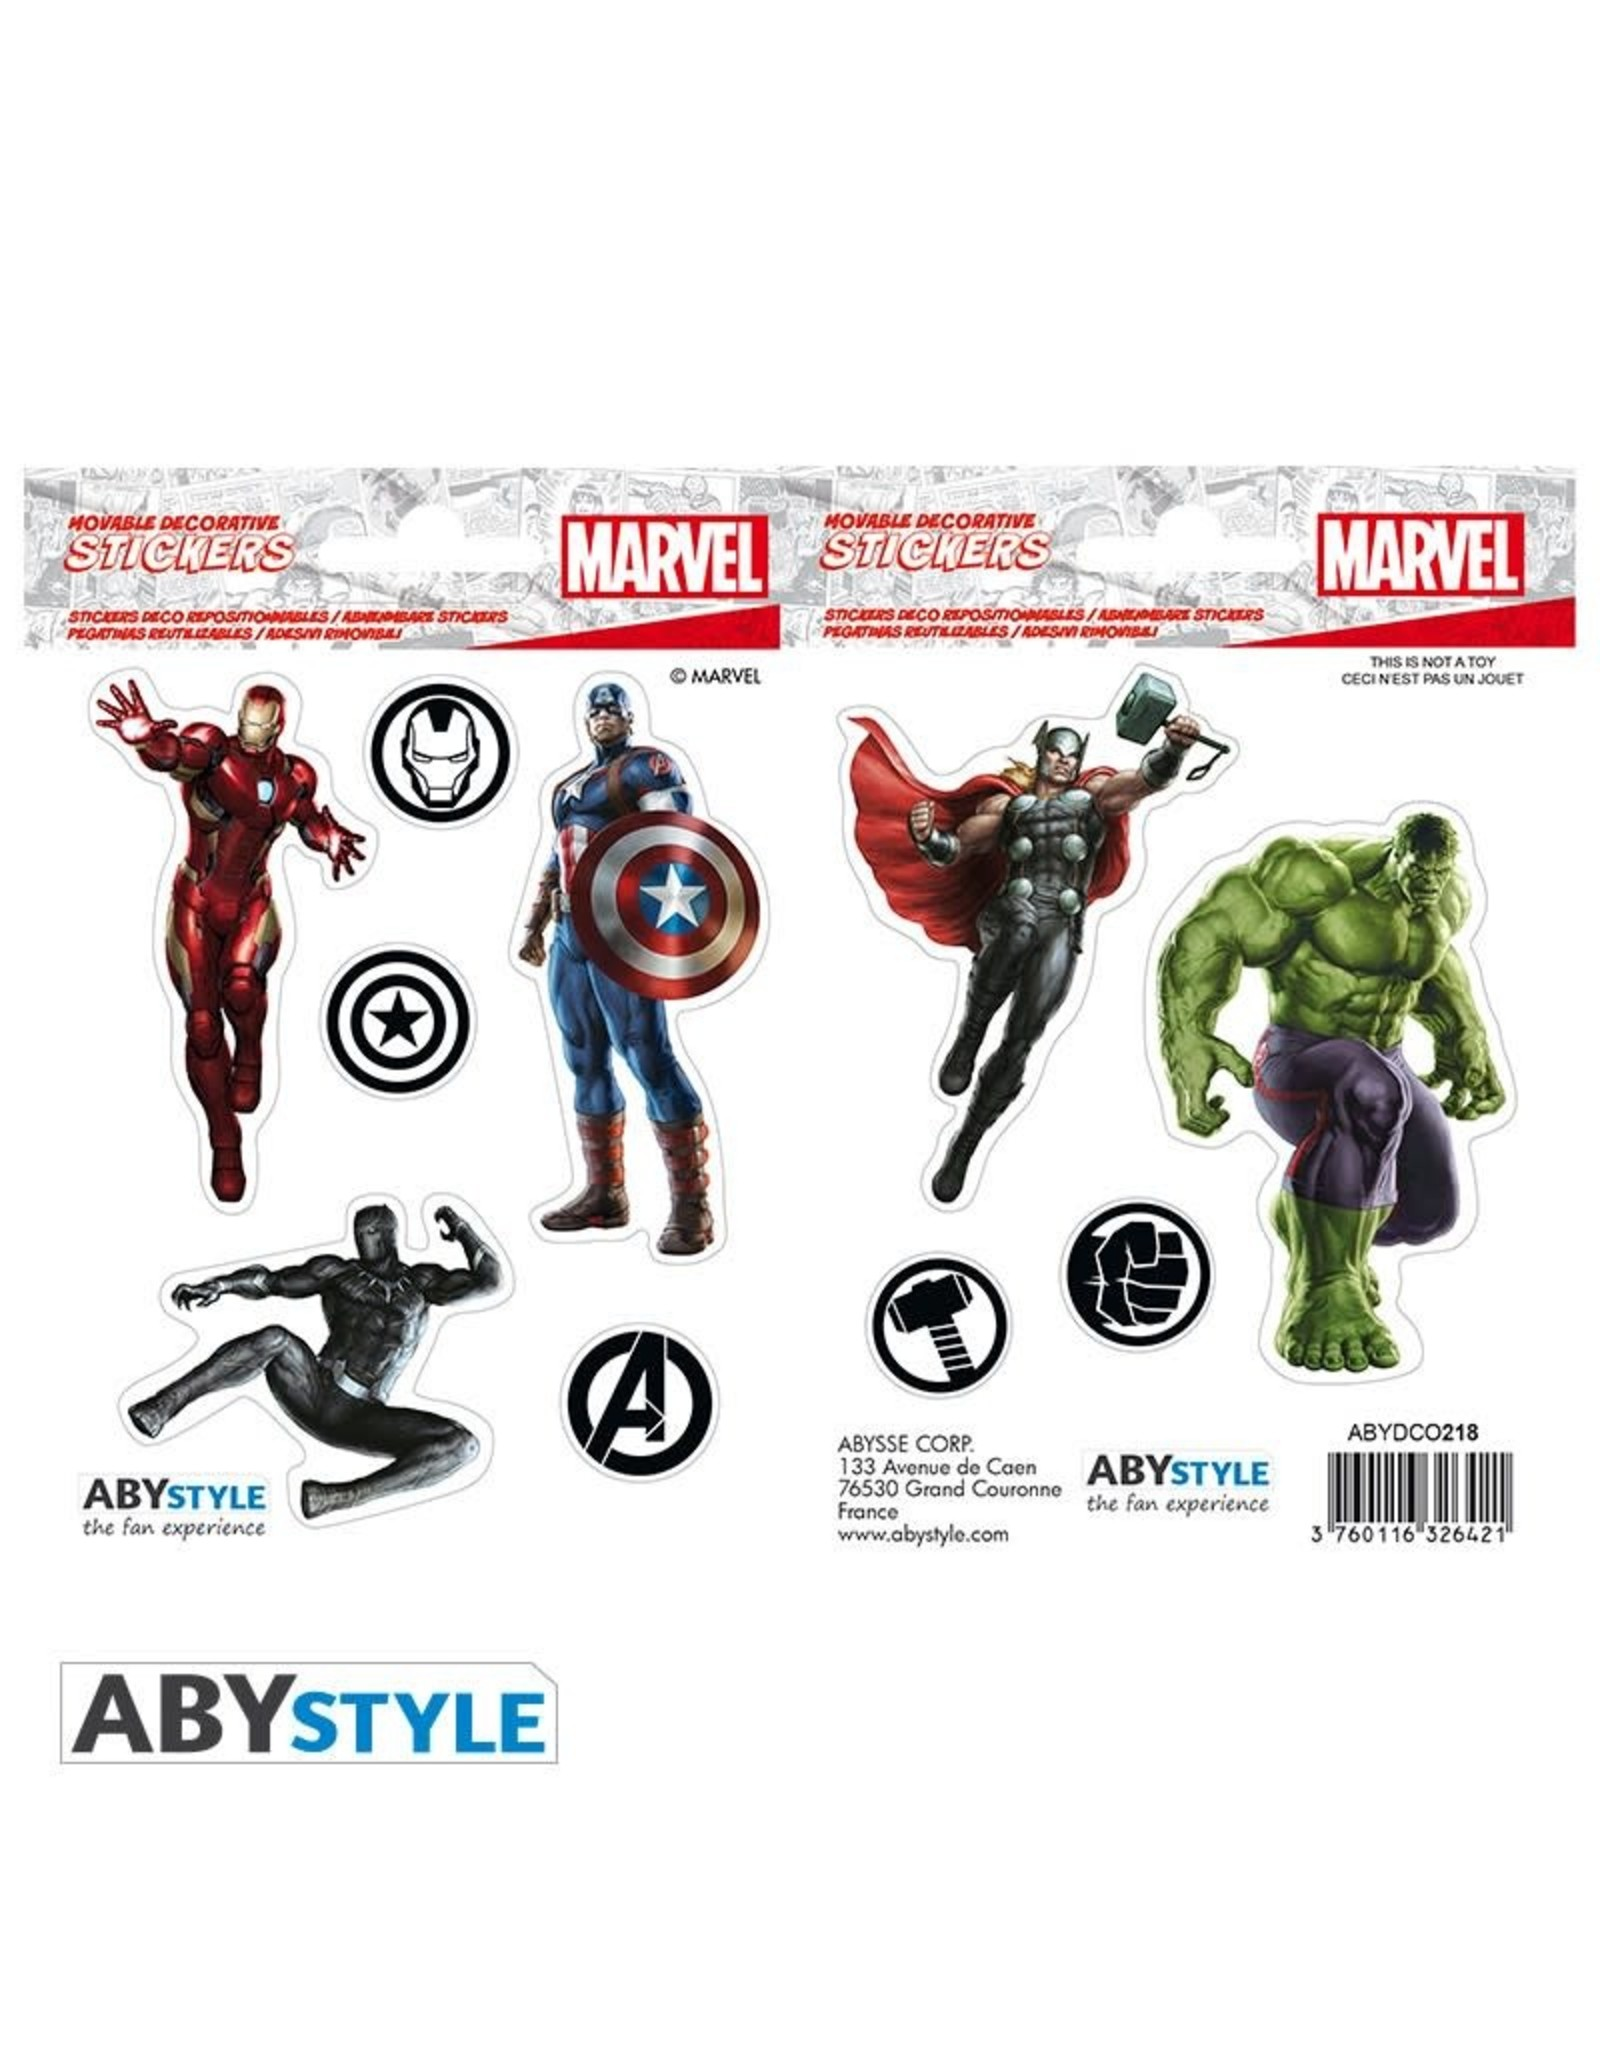 MARVEL - Stickers - 16x11cm / 2 Sheets - Avengers